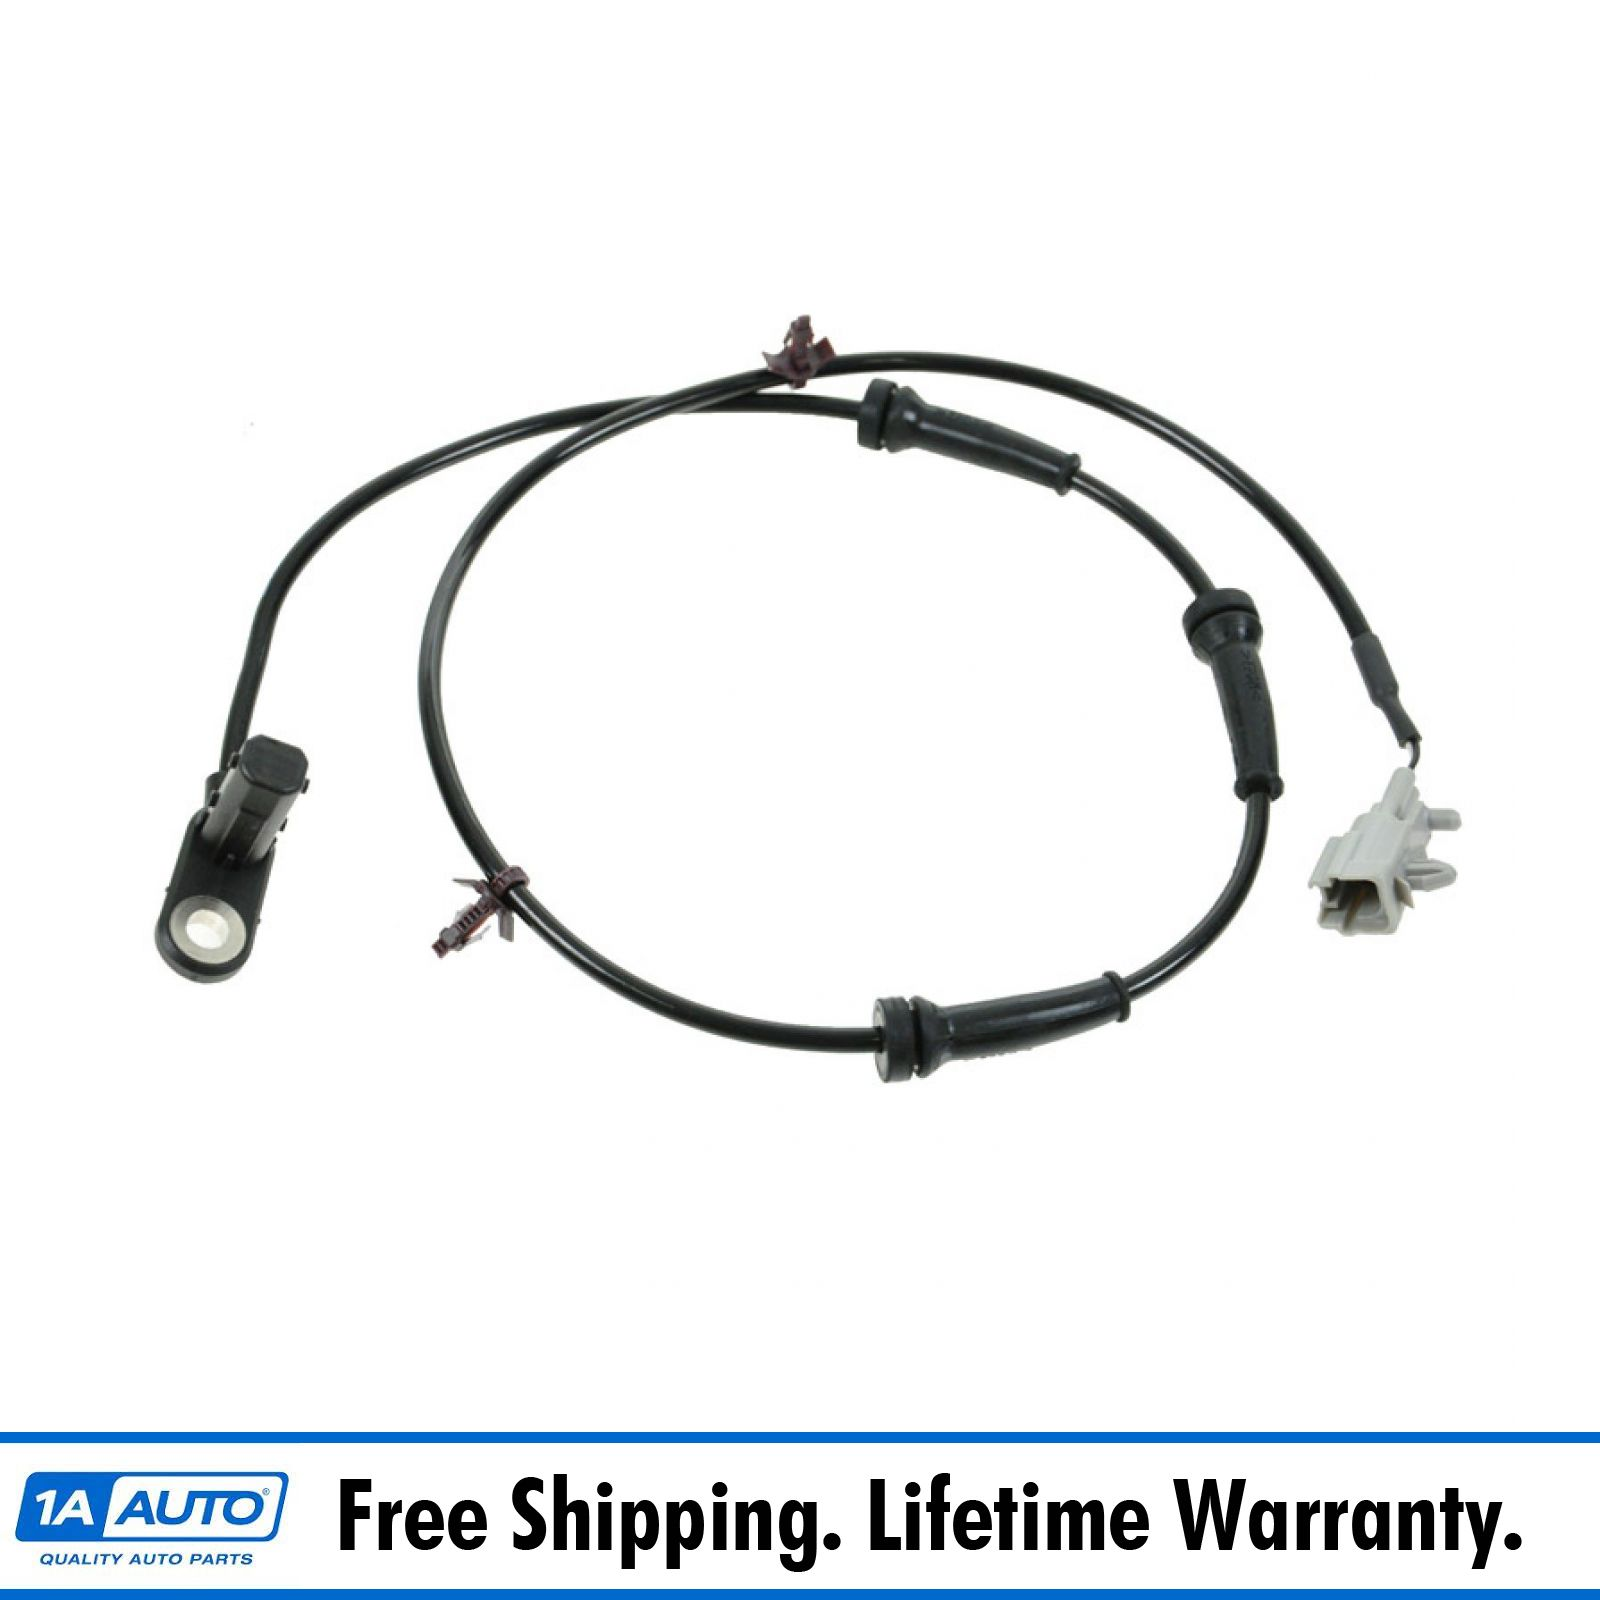 Rear Wheel Abs Sensor With Harness Passenger Side Right Rh